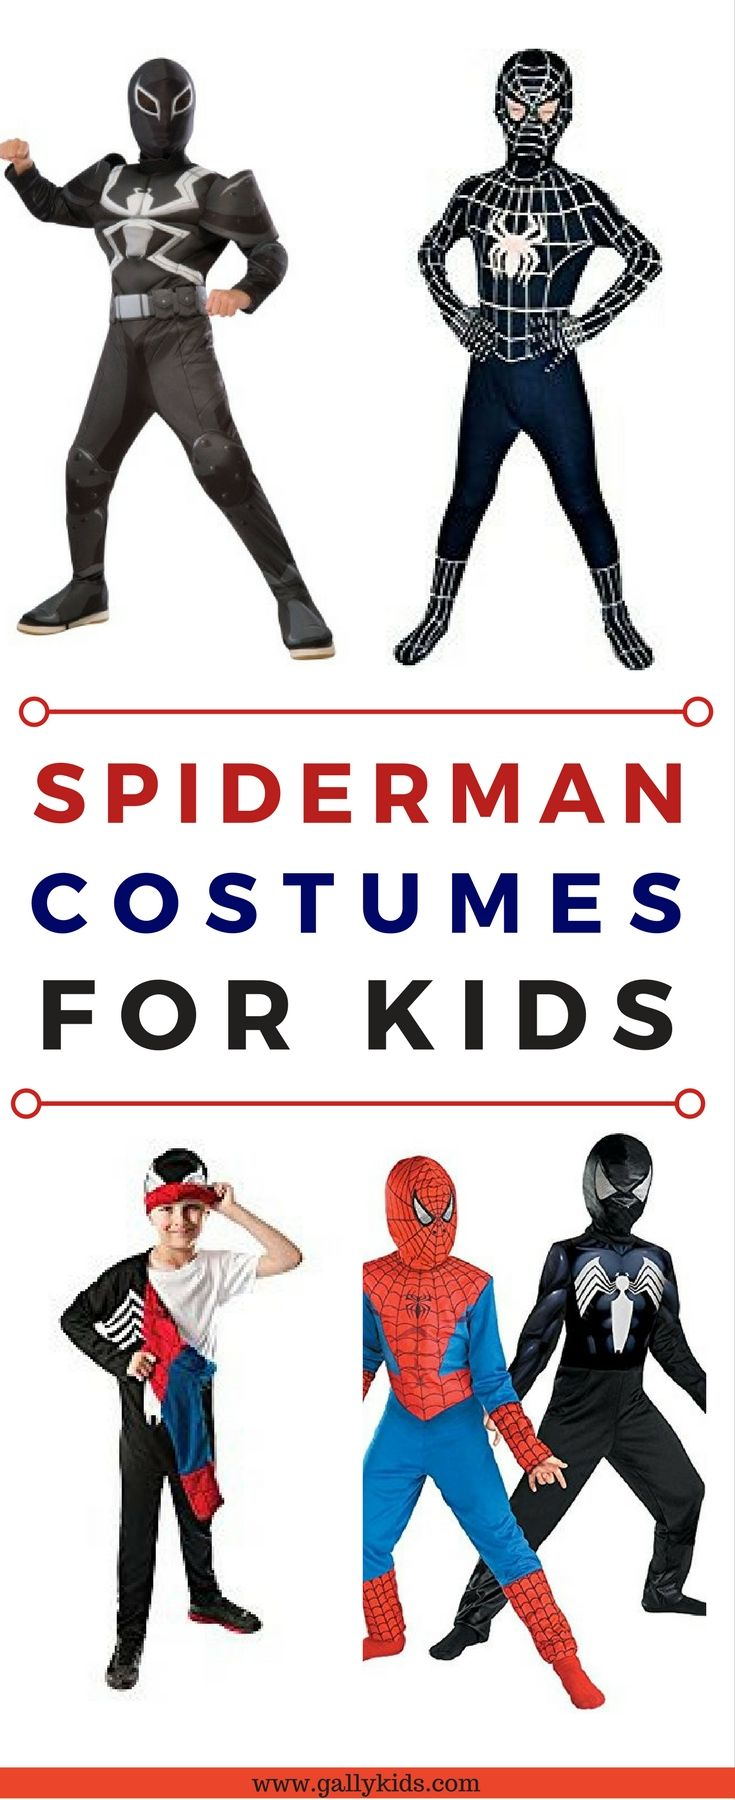 Black spiderman costume for toddlers and older kids. Love this venom suit. Especially love the reversible one for kids who change their minds on which Spidey they're going to be! #spidermancostumes